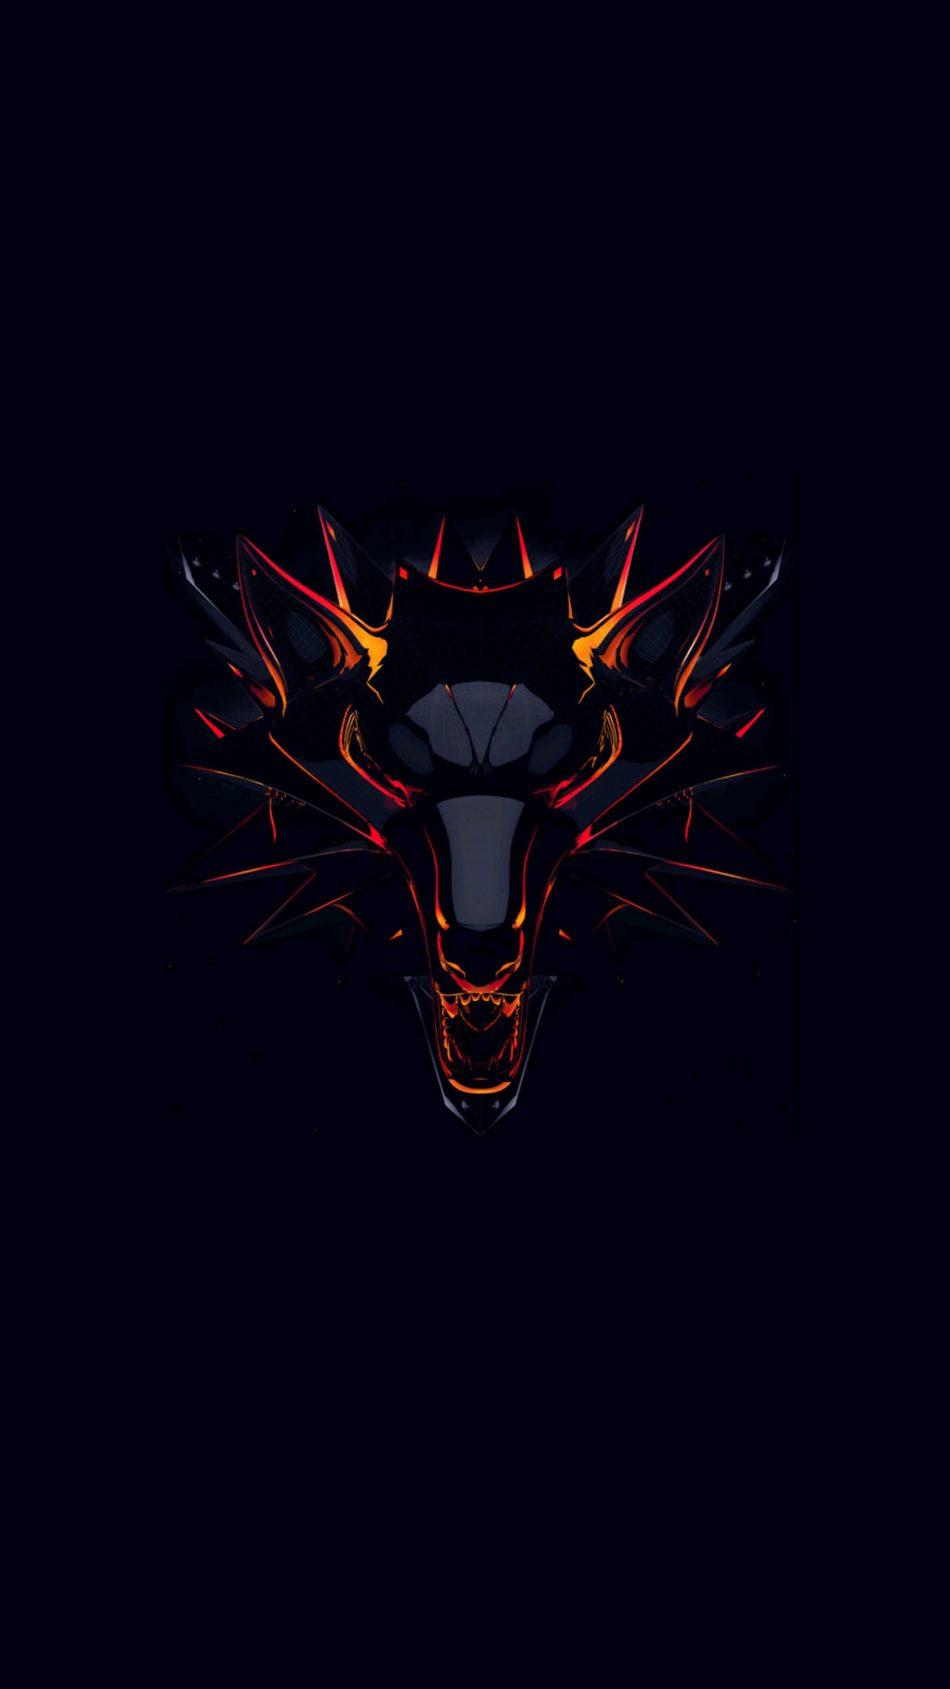 Witcher Dark Background Minimal 4K Ultra HD Mobile Wallpaper